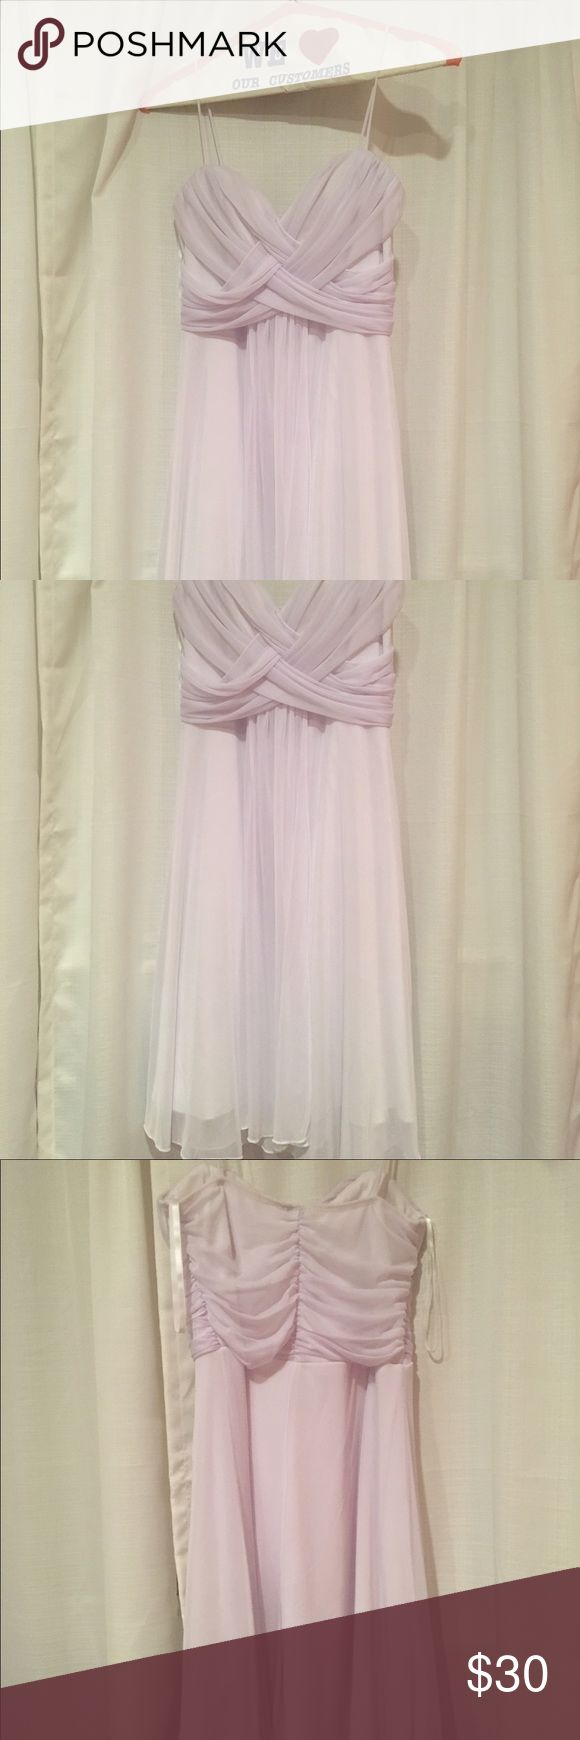 "Taboo white formal dress size 7-8 Love this dress, but it's slightly too big, although it could probably fit sizes 6-8. I'm 5'5"" and it goes down to about my knees so perfect for a formal event! No signs of wear. Taboo Dresses Prom"